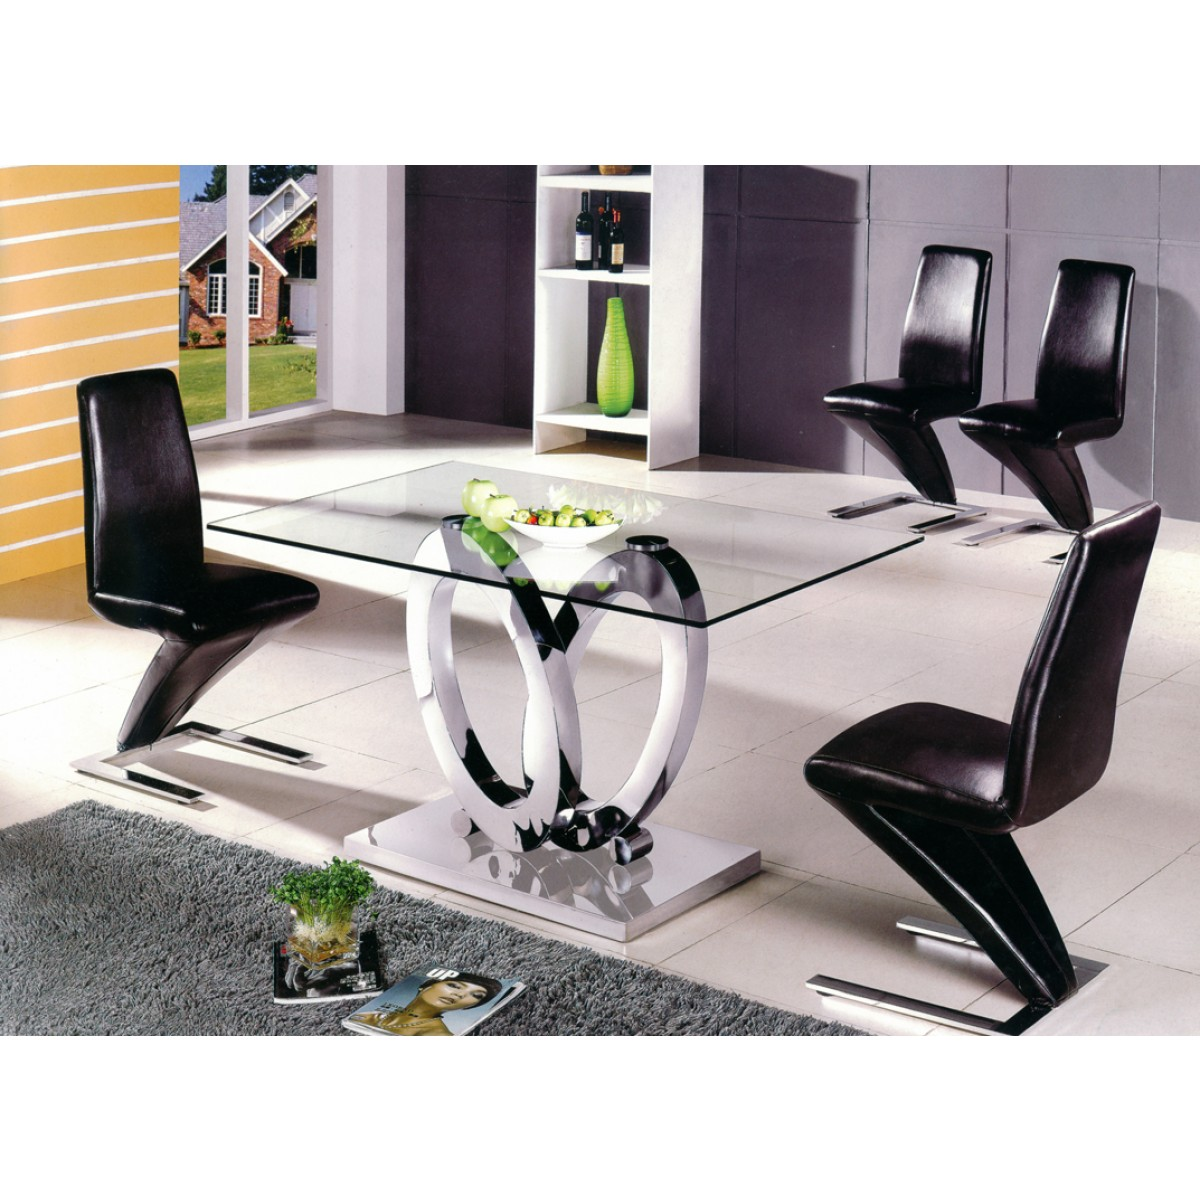 Table Salle A Manger Design Of Table Manger Design Ellipse Taille Au Choix Tables